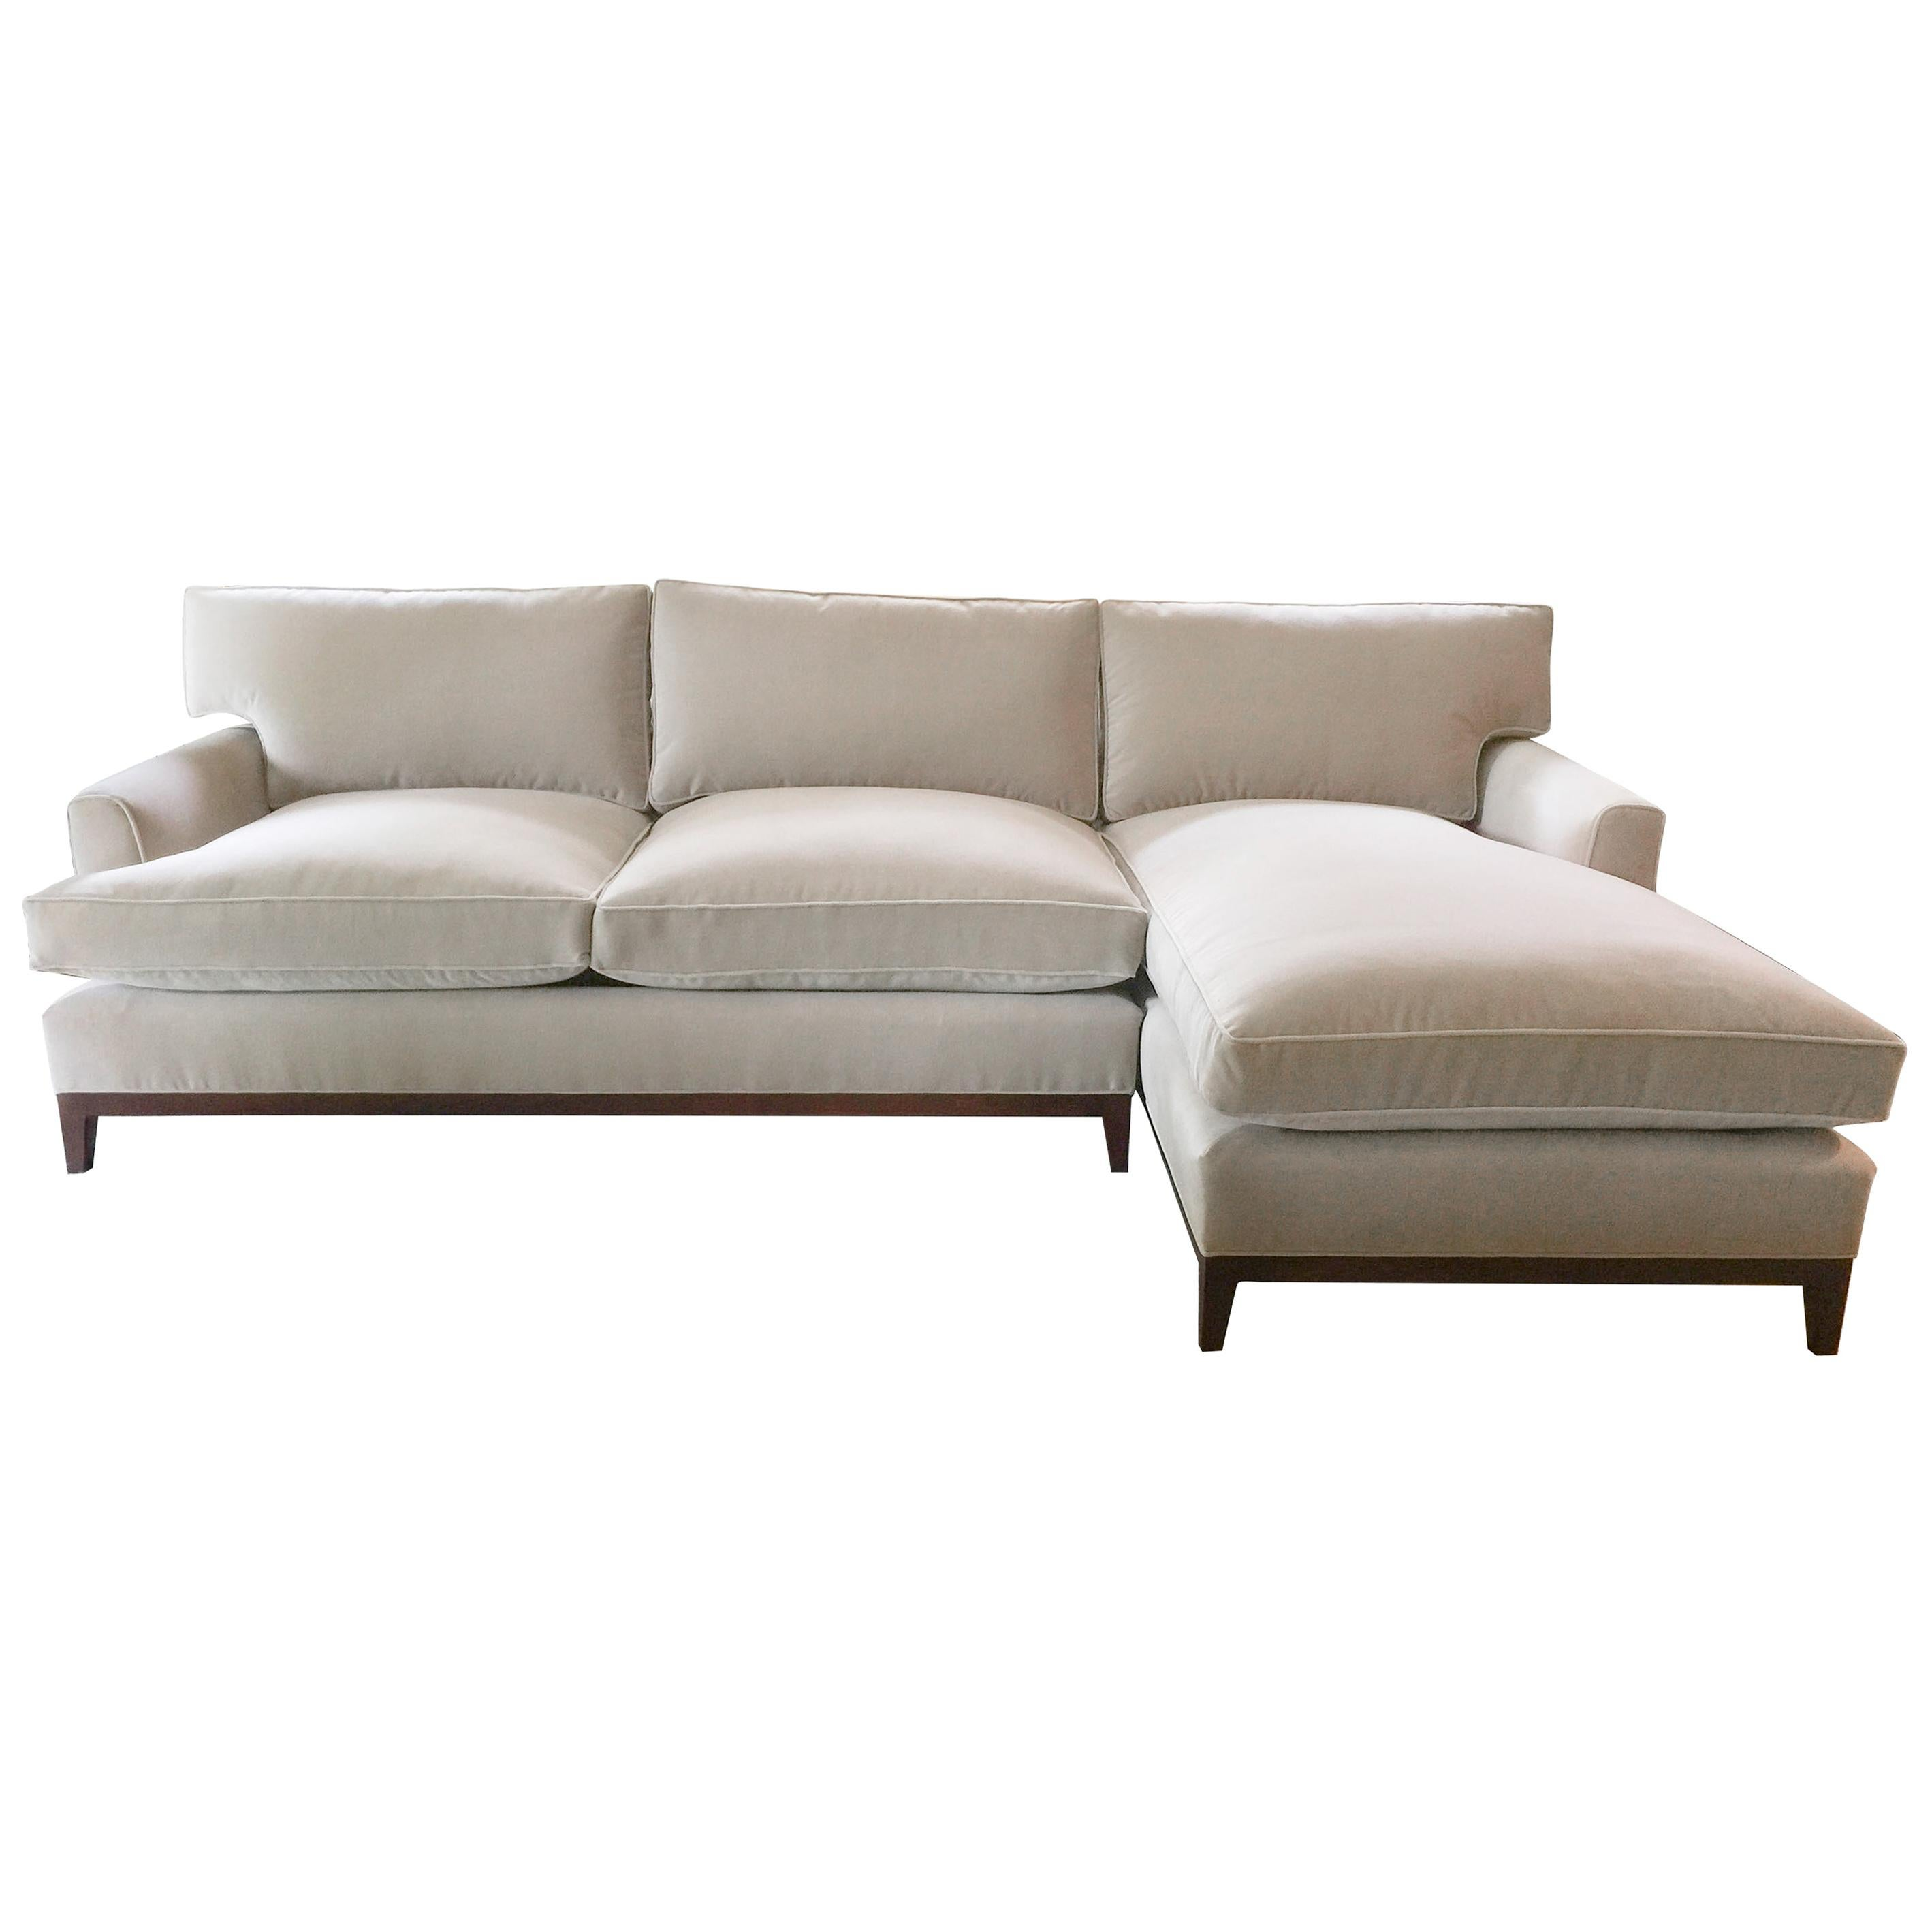 Traditional Love Seat with Chaise